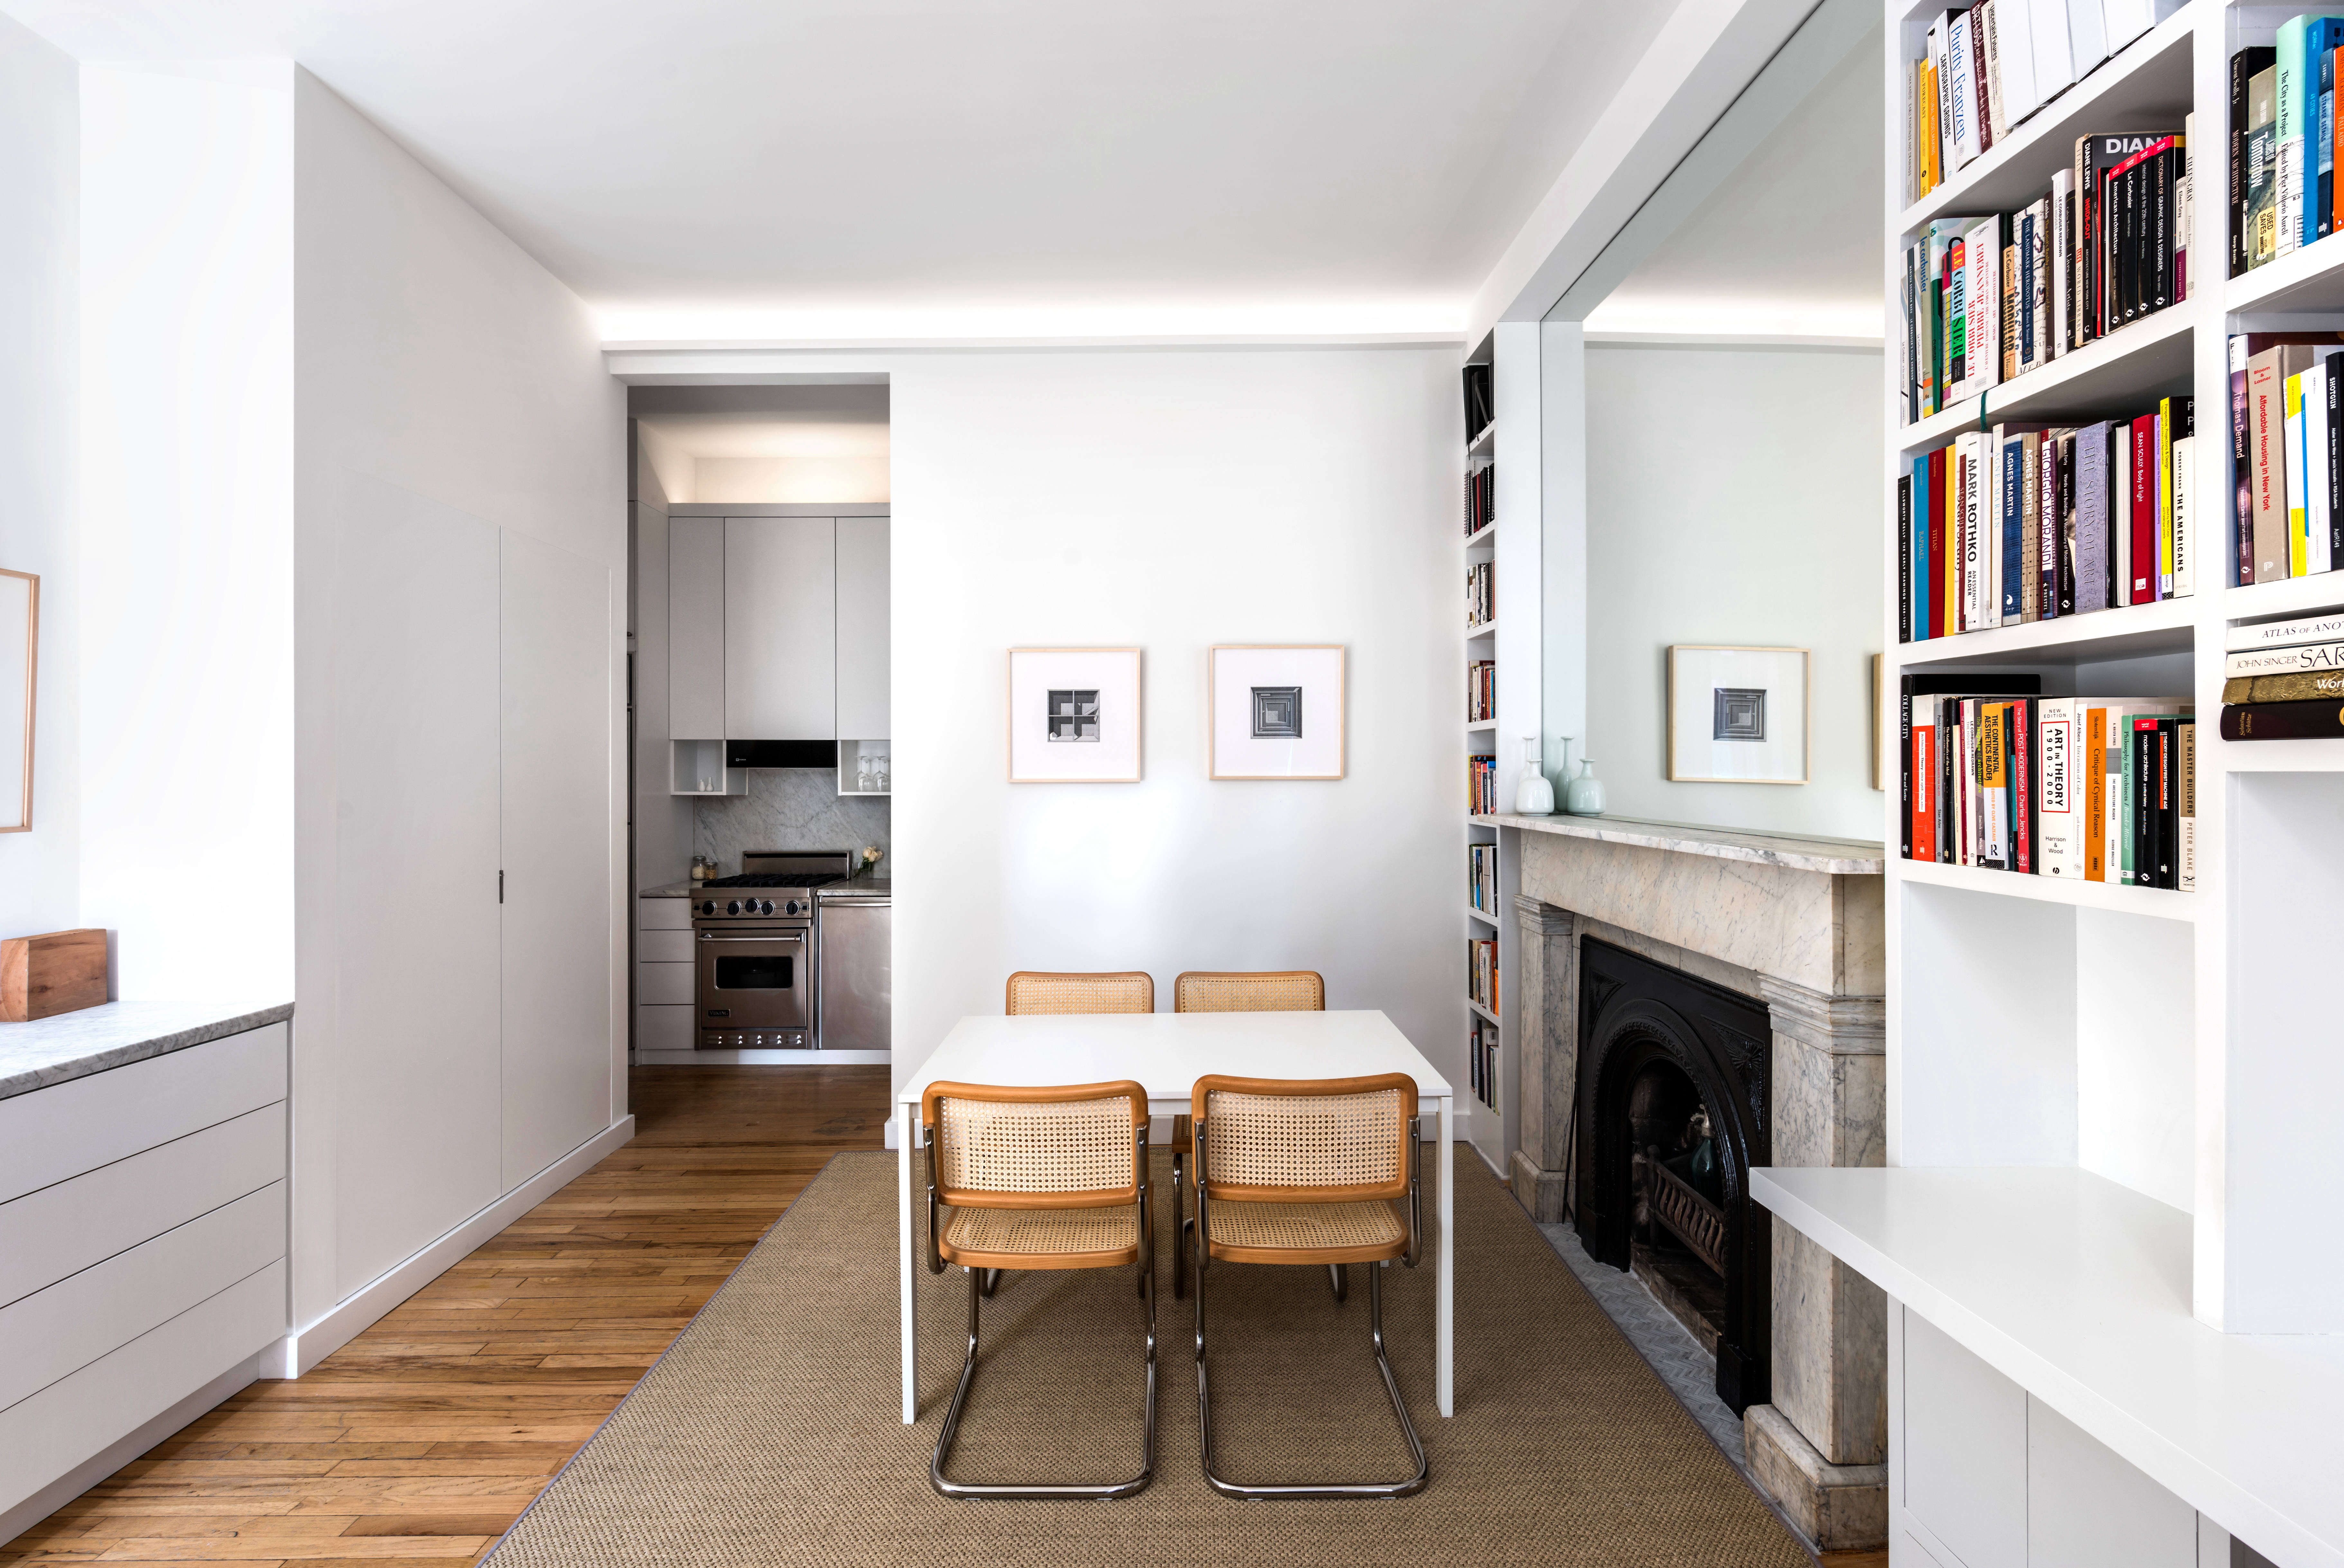 Small-Space Living: A 400-Square-Foot NYC Apartment by ...